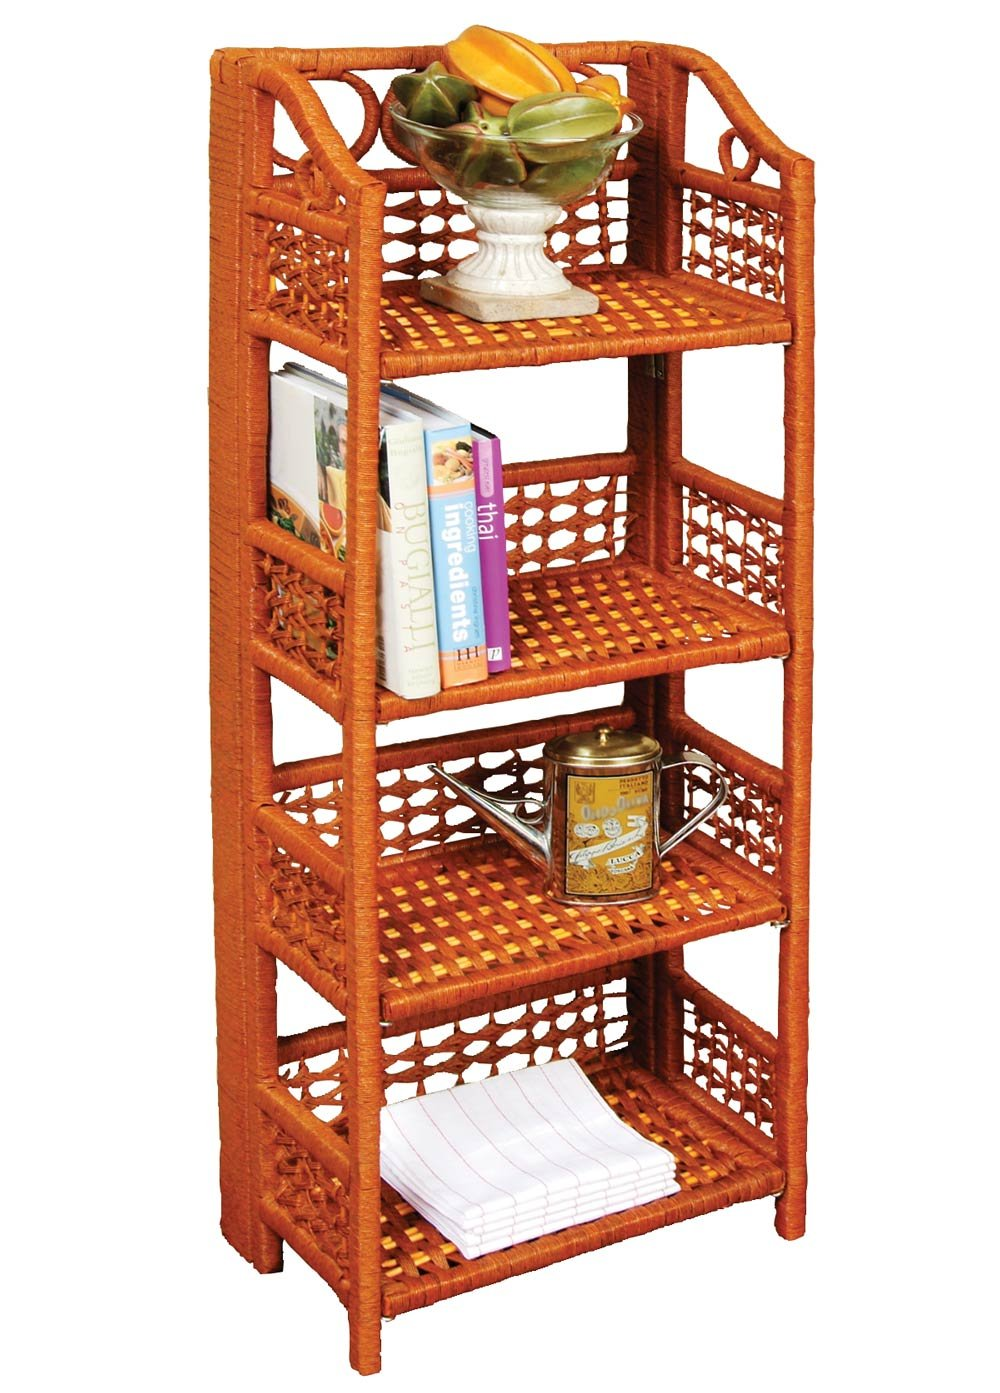 Very Amazon.com: WalterDrake Wicker Shelves: Kitchen & Dining UJ11